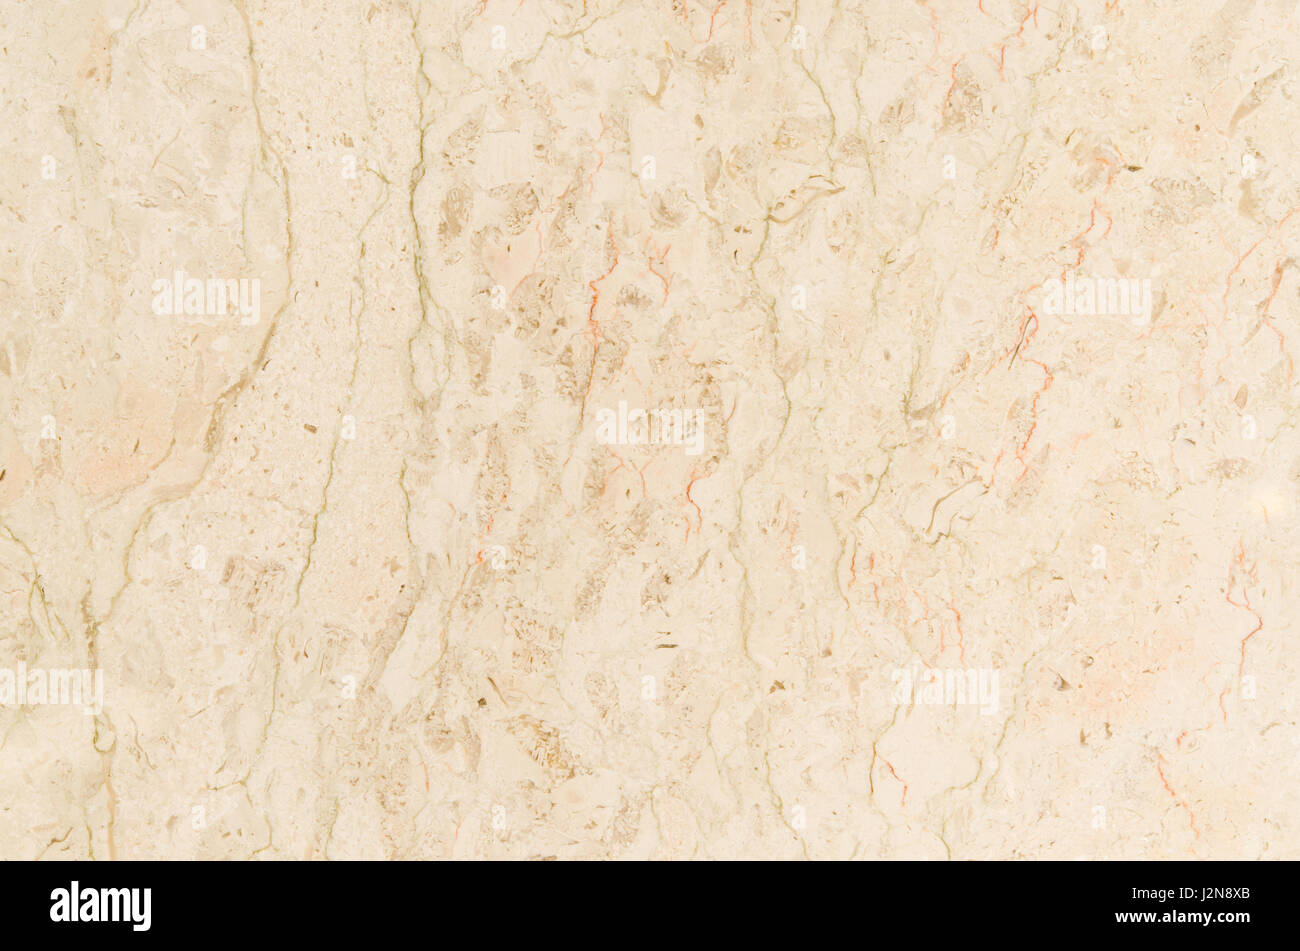 Light Brown Marble Texture Background Abstract Natural